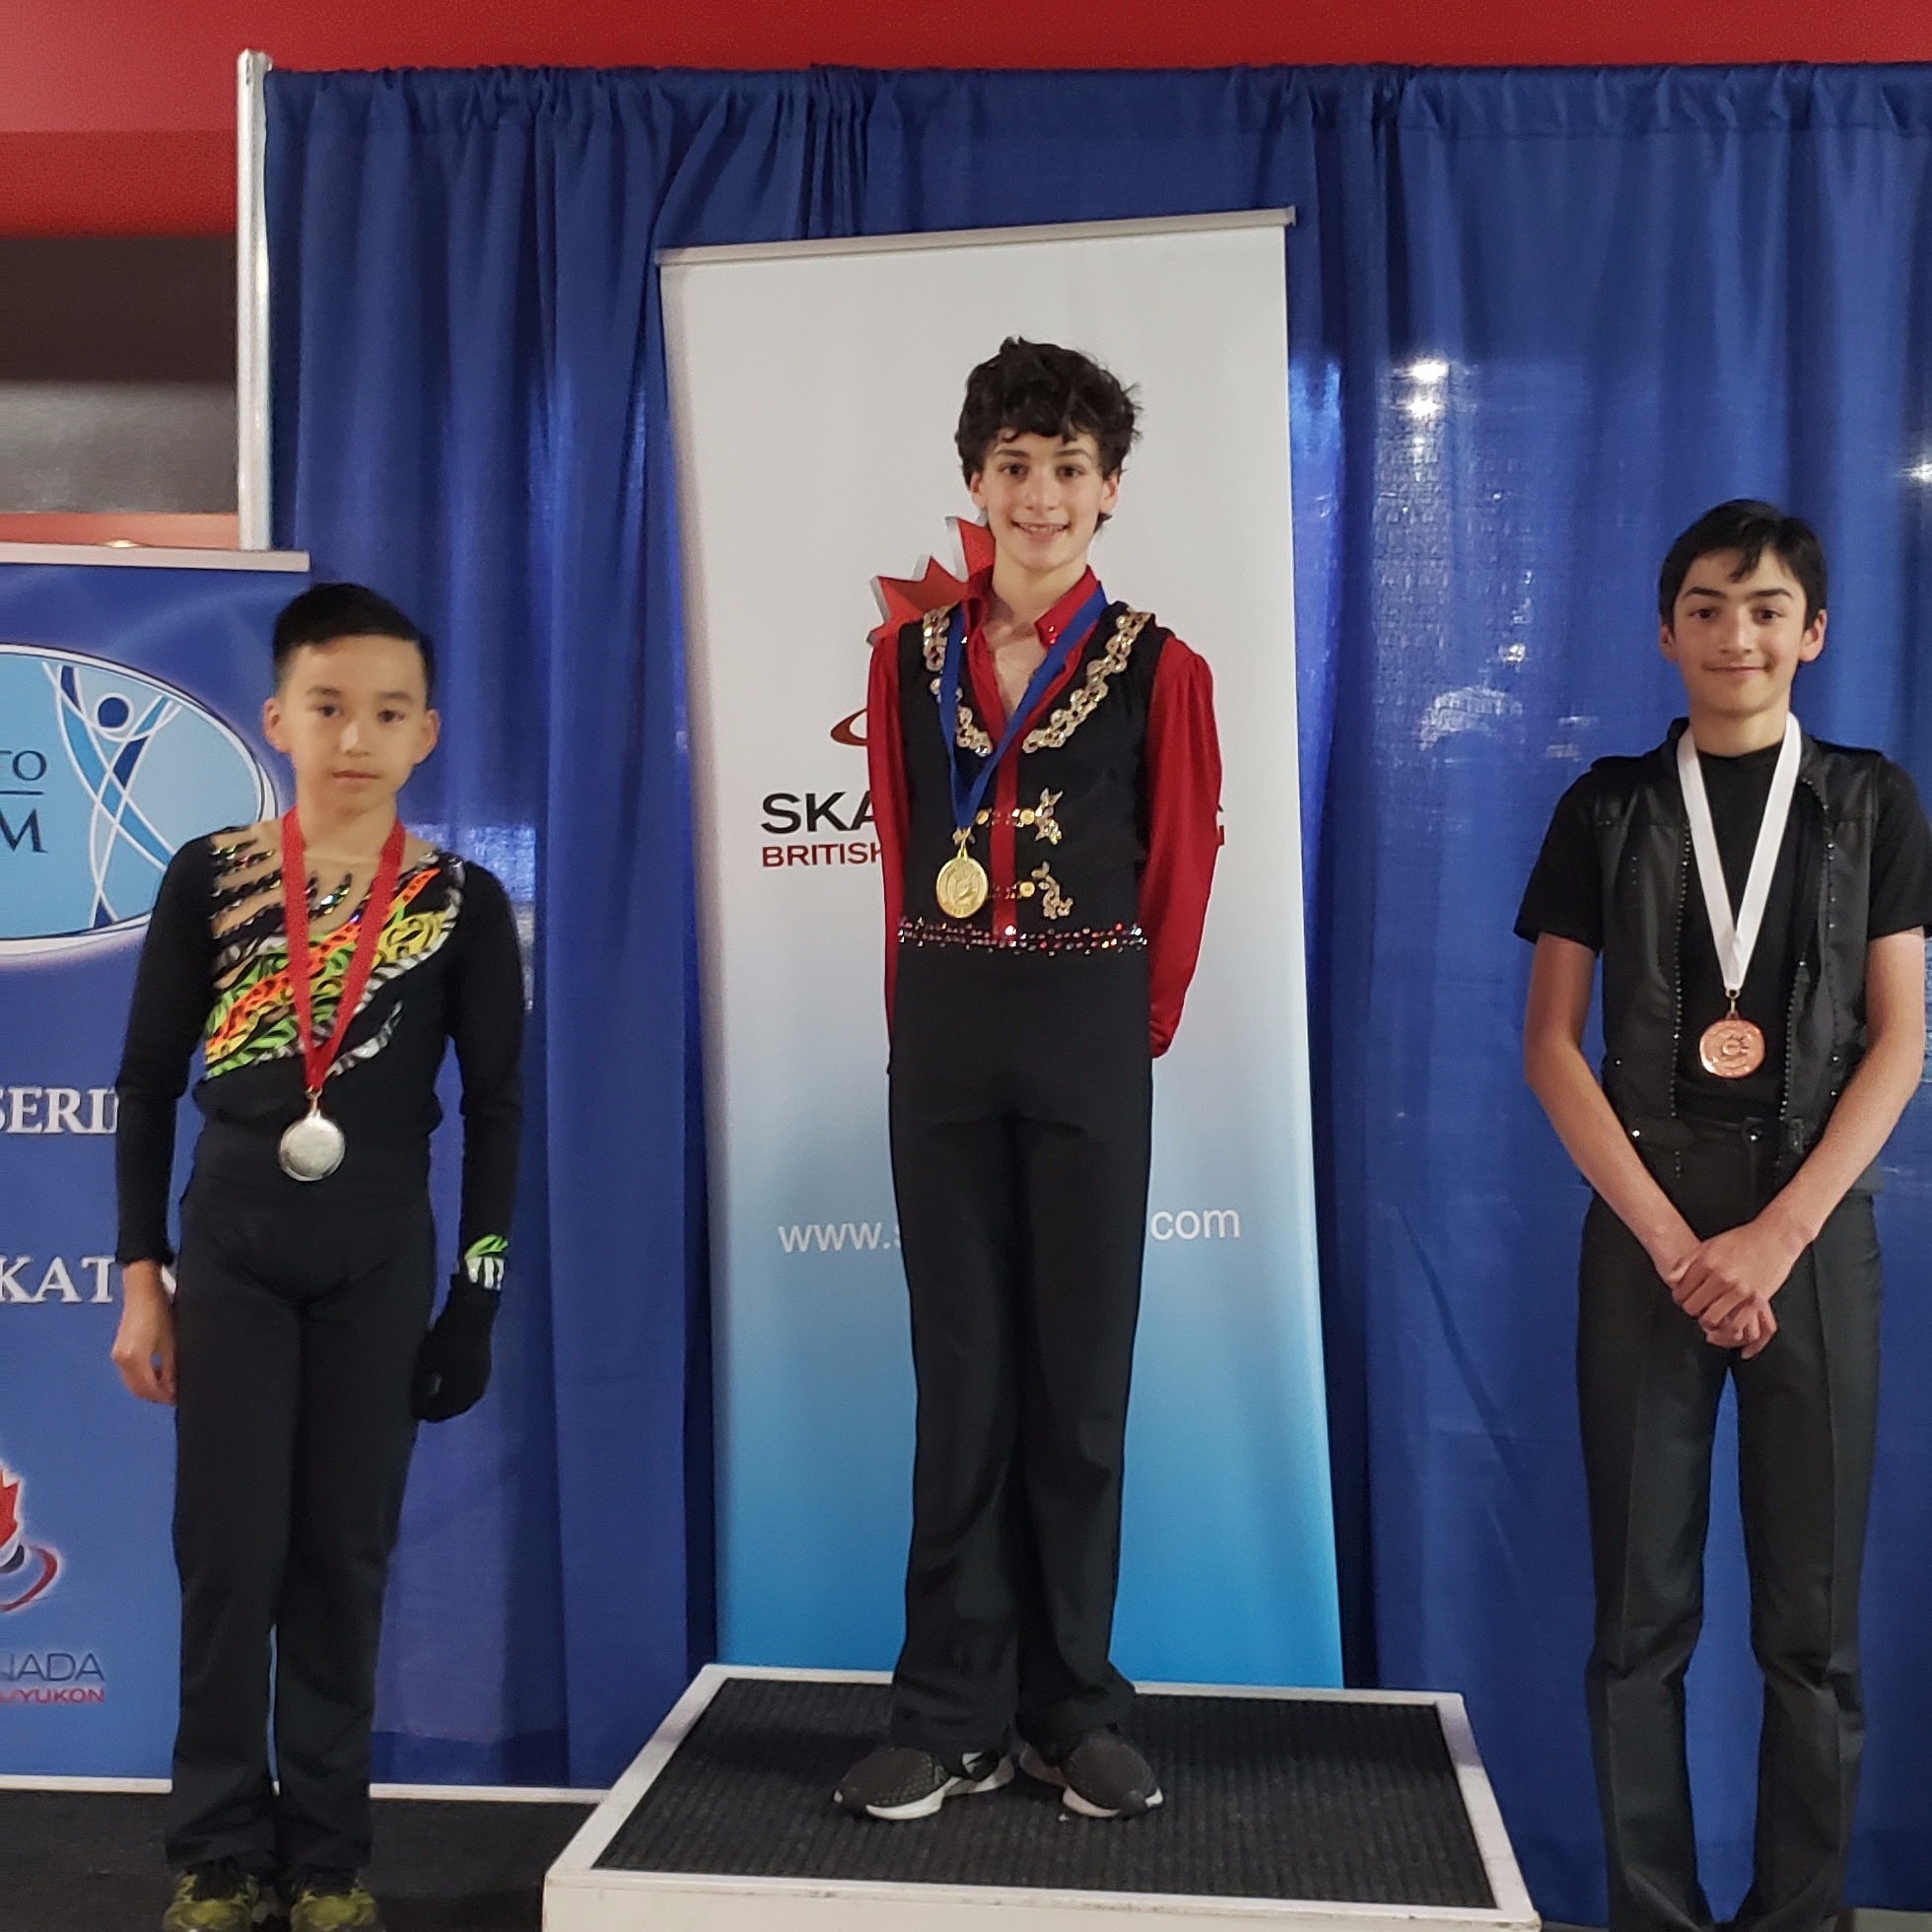 Ron Vainer - Champs International Skater of the Month!